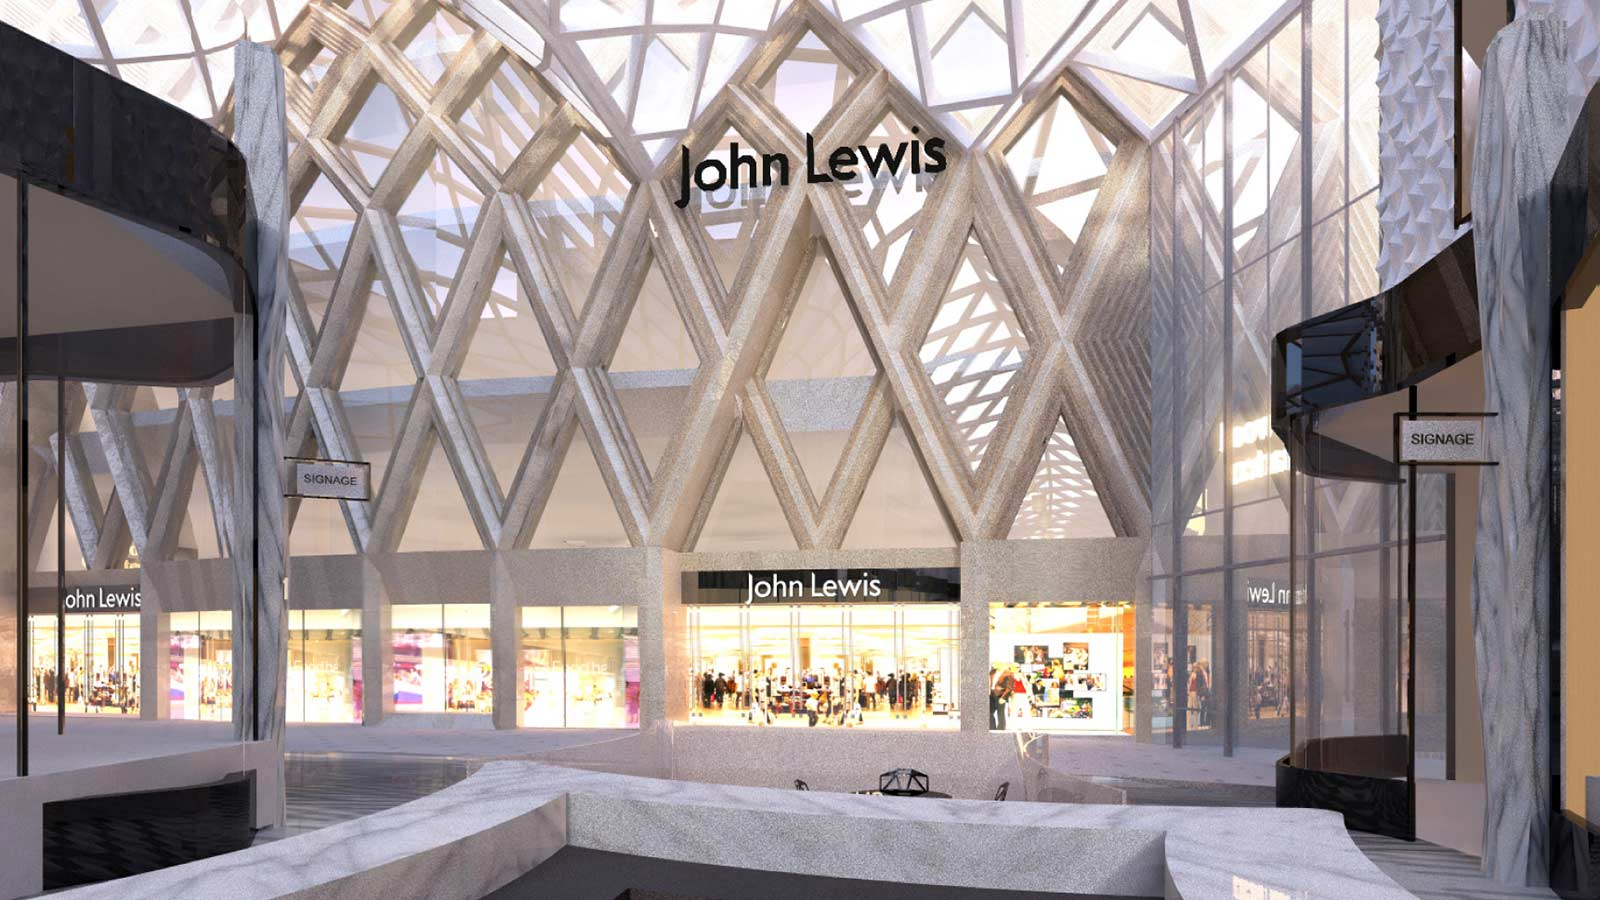 John lewis leeds a regional flagship store for a classic british john lewis leeds a regional flagship store for a classic british brand mace gumiabroncs Image collections